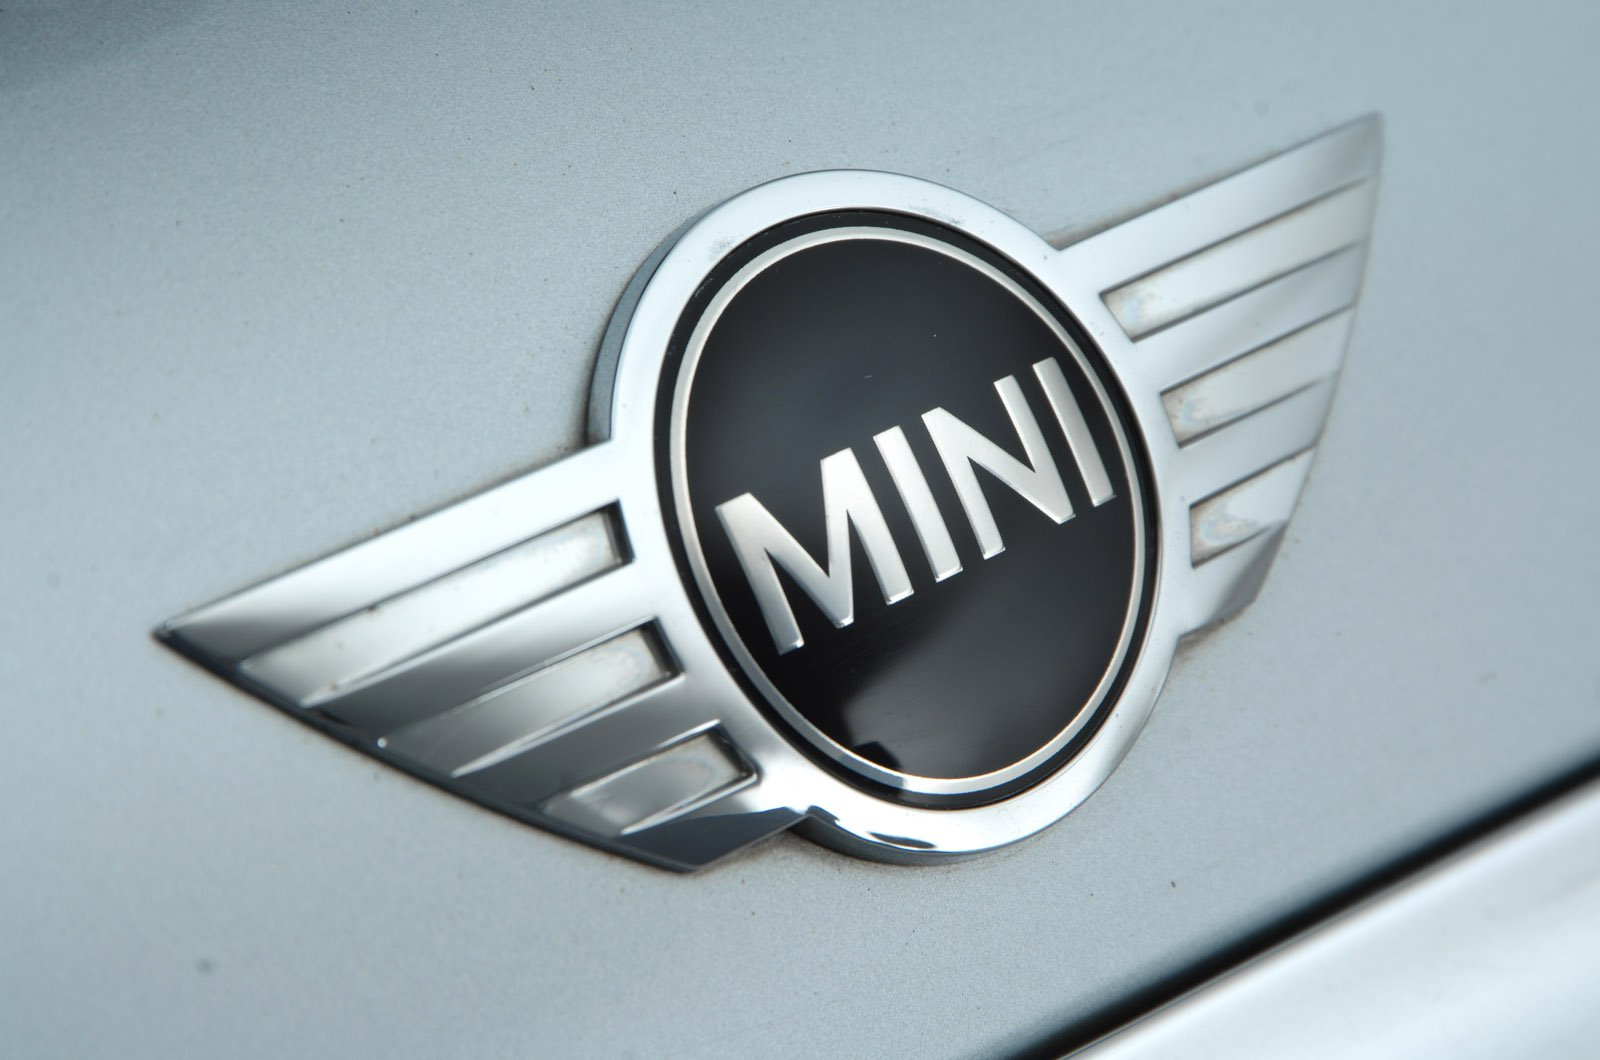 Mini badge